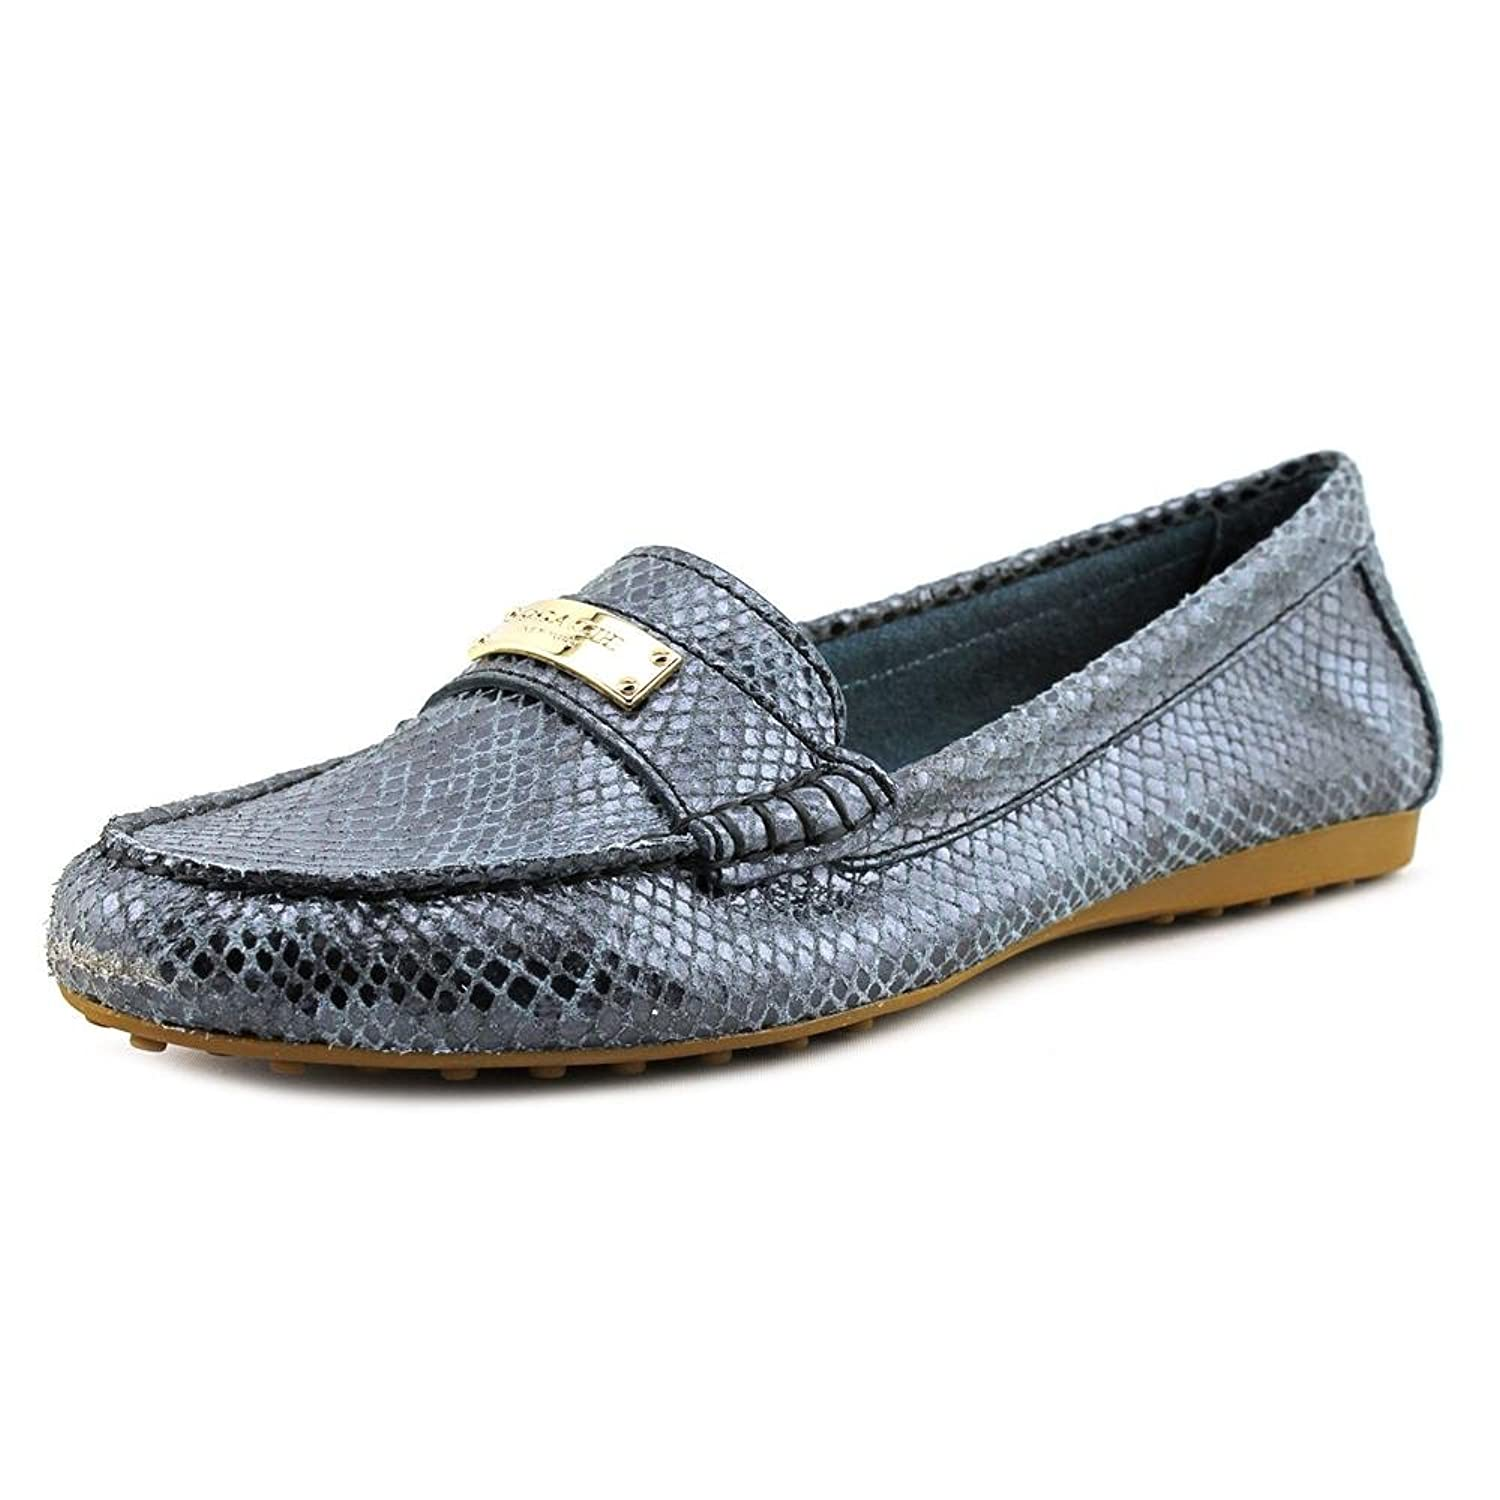 Coach Fredrica Womens Leather Ballet Flats